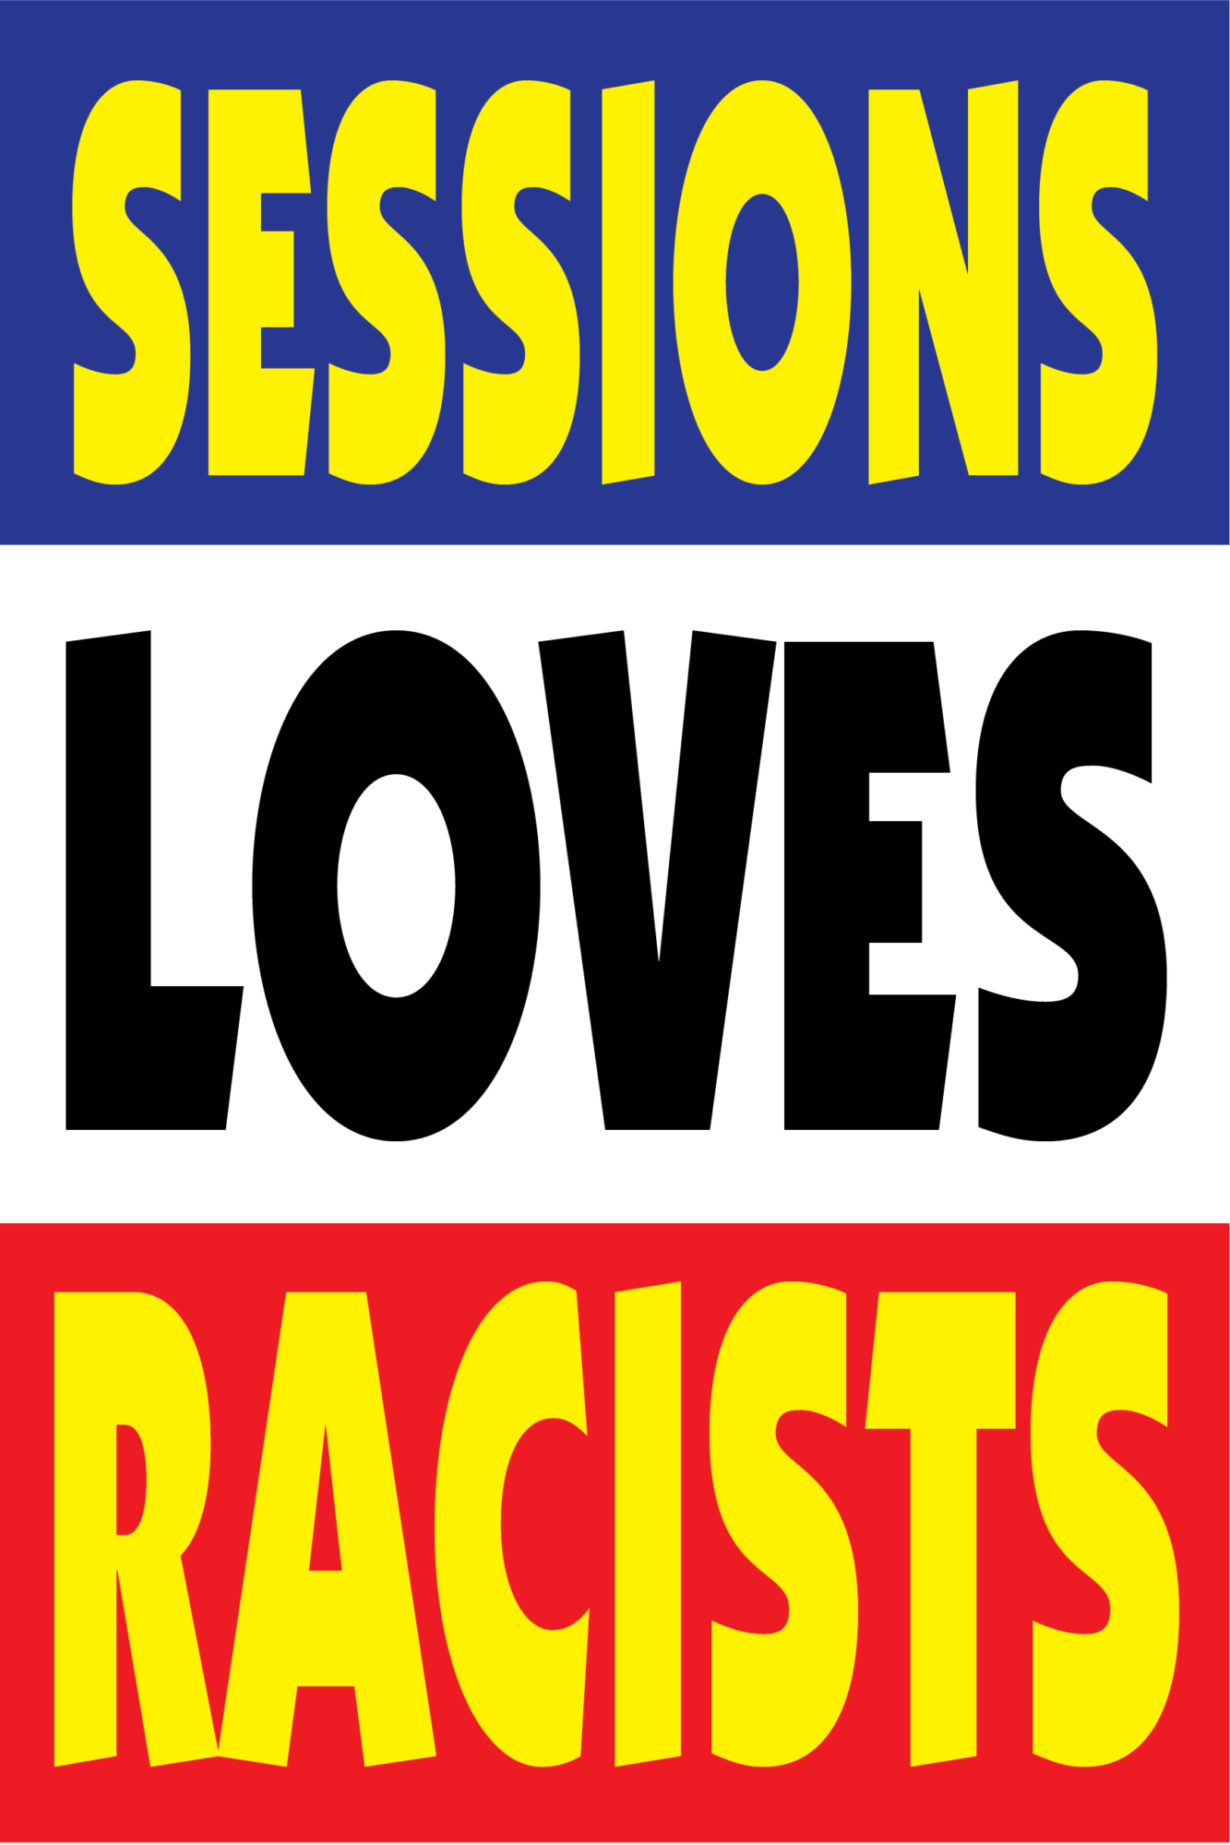 NP_01_25_2017_Sessions-Loves-Racists.jpg